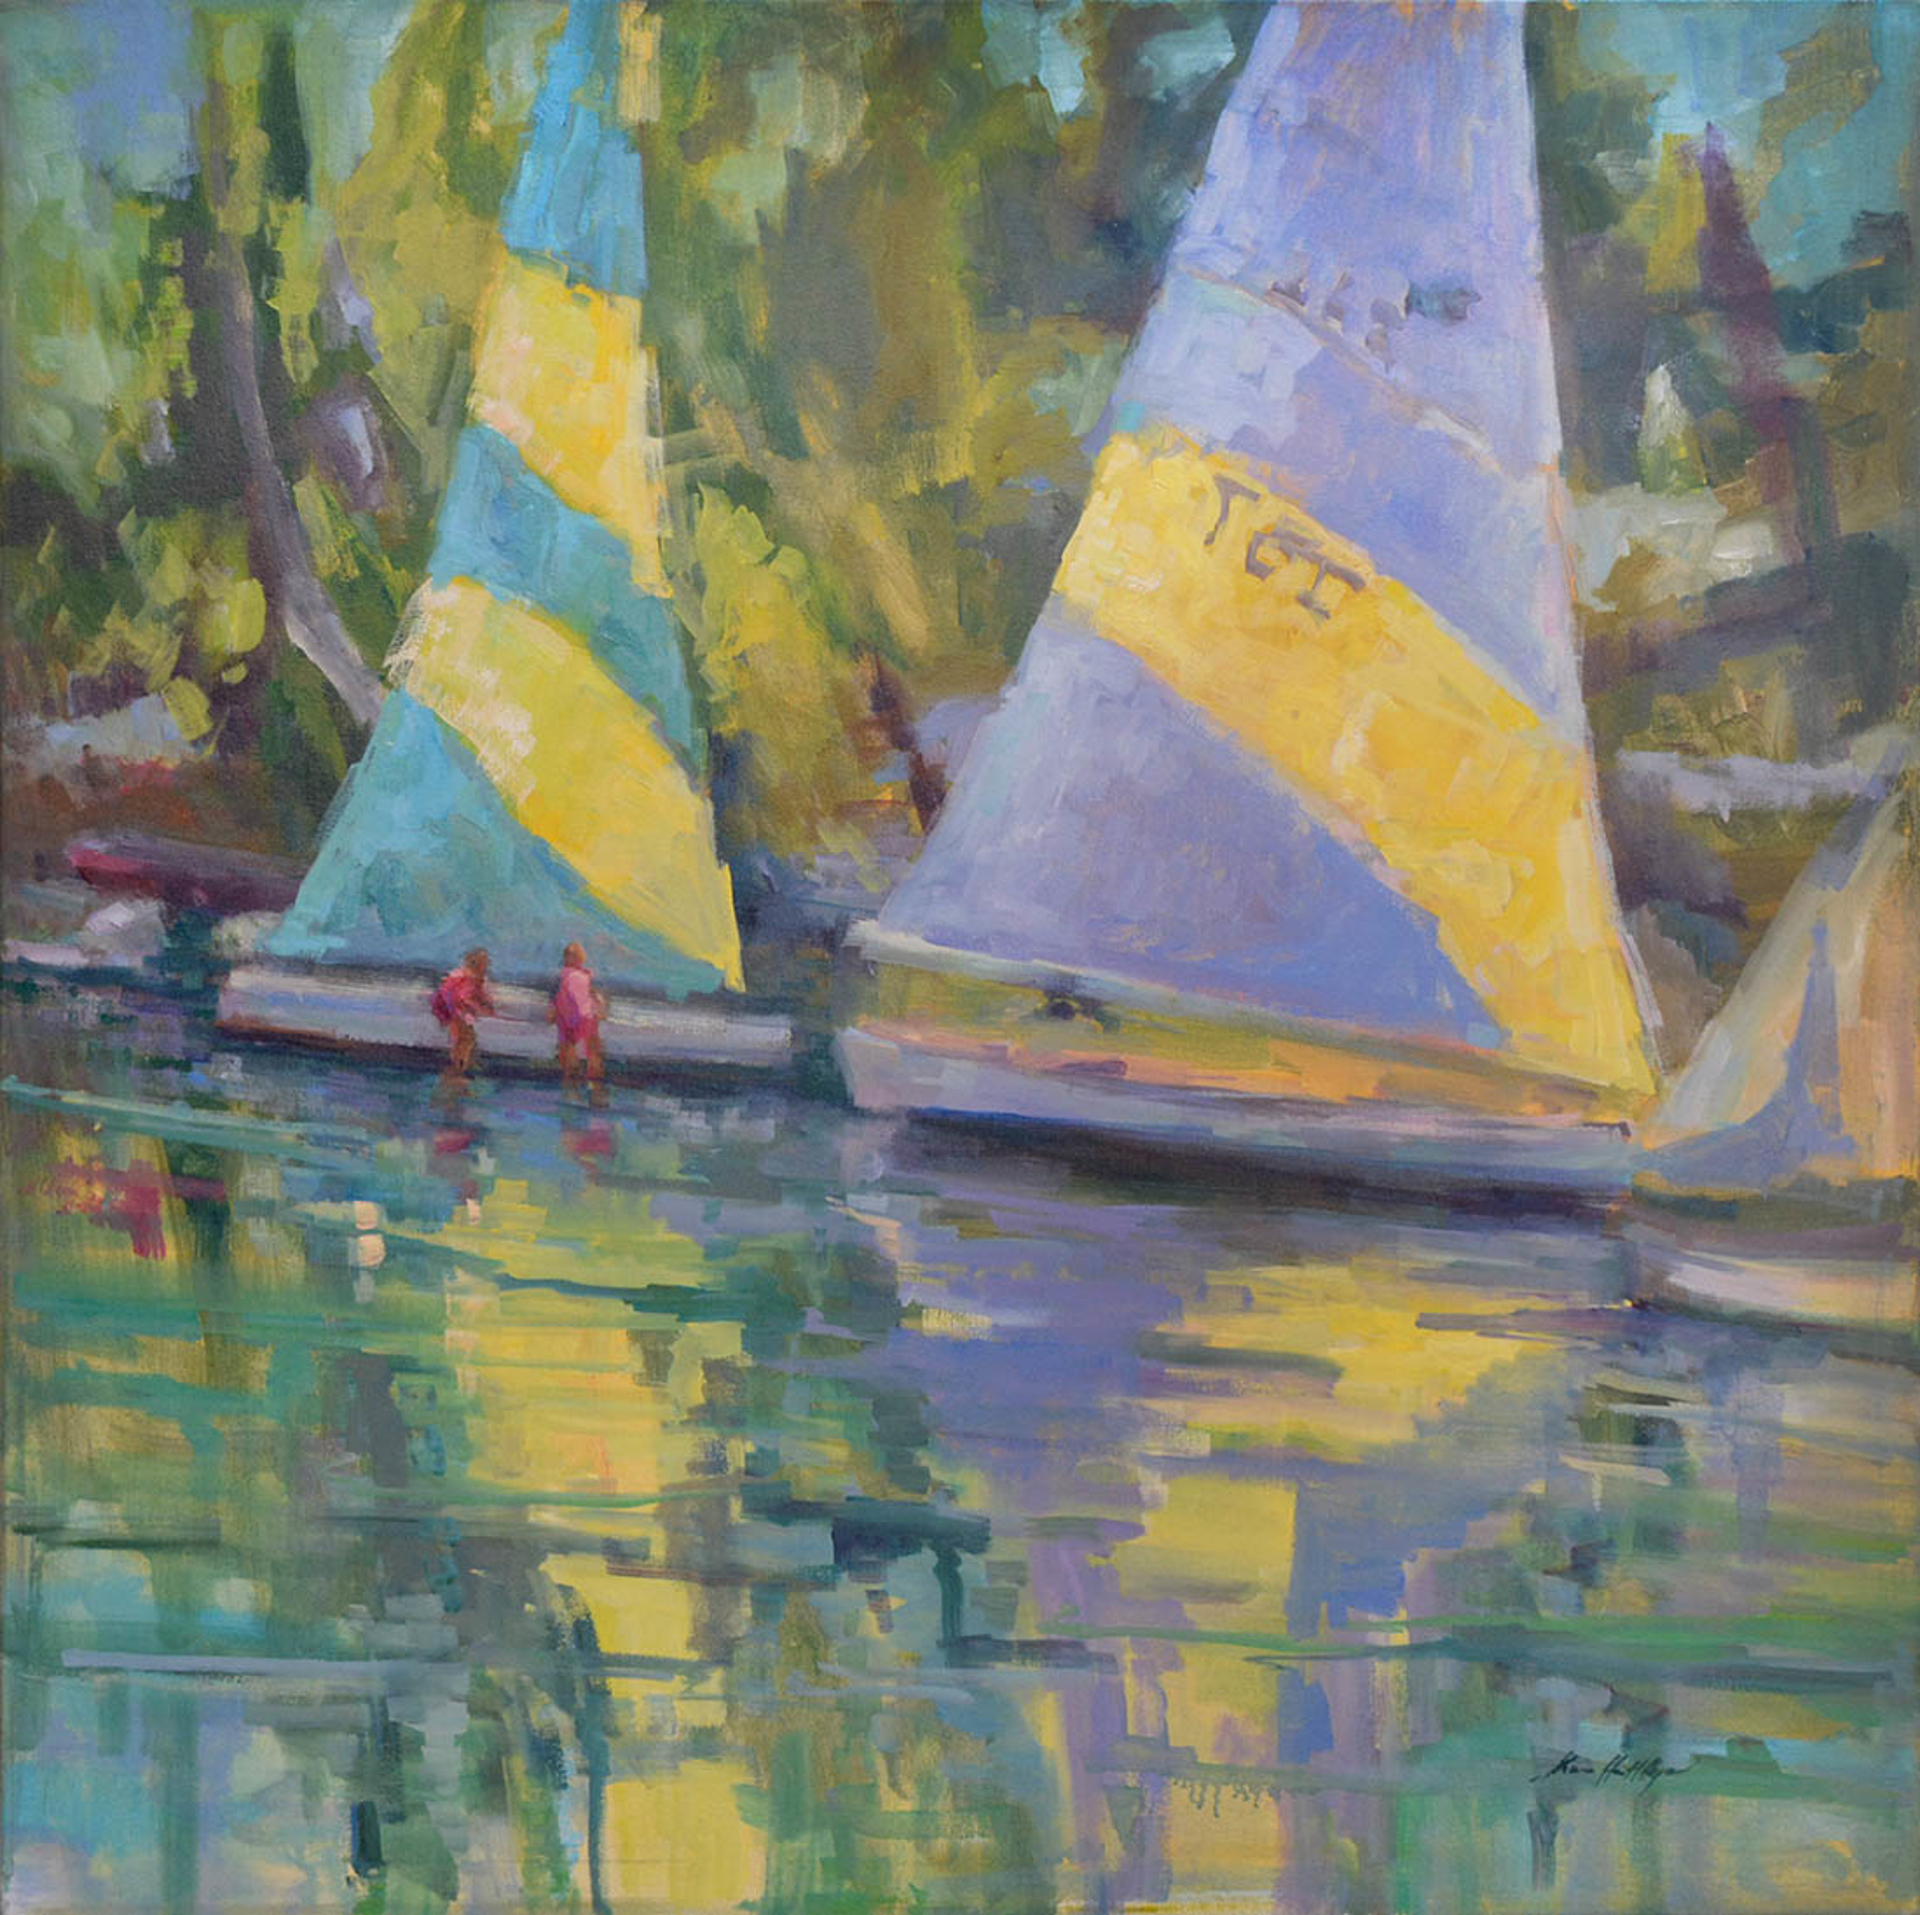 Hope Town Sail by Karen Hewitt Hagan